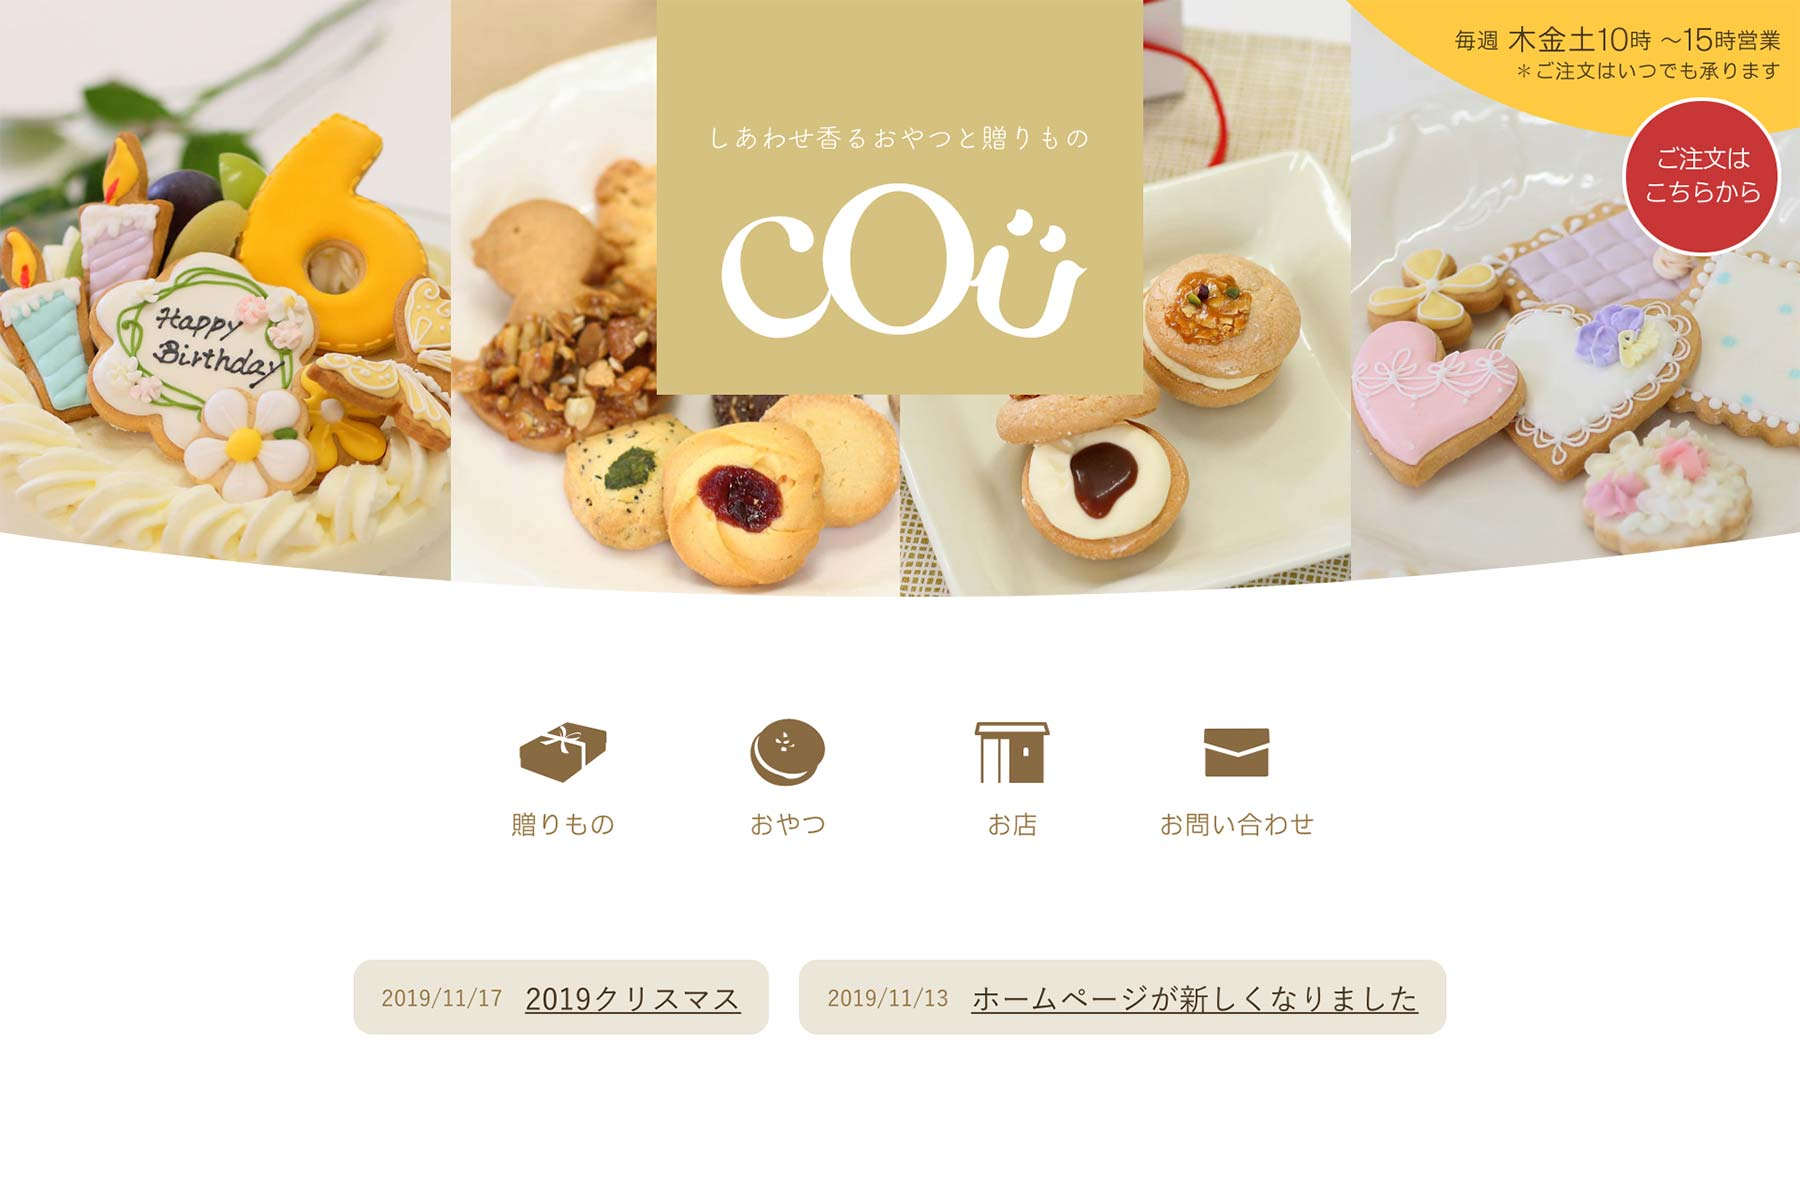 Cou Webデザイン PC